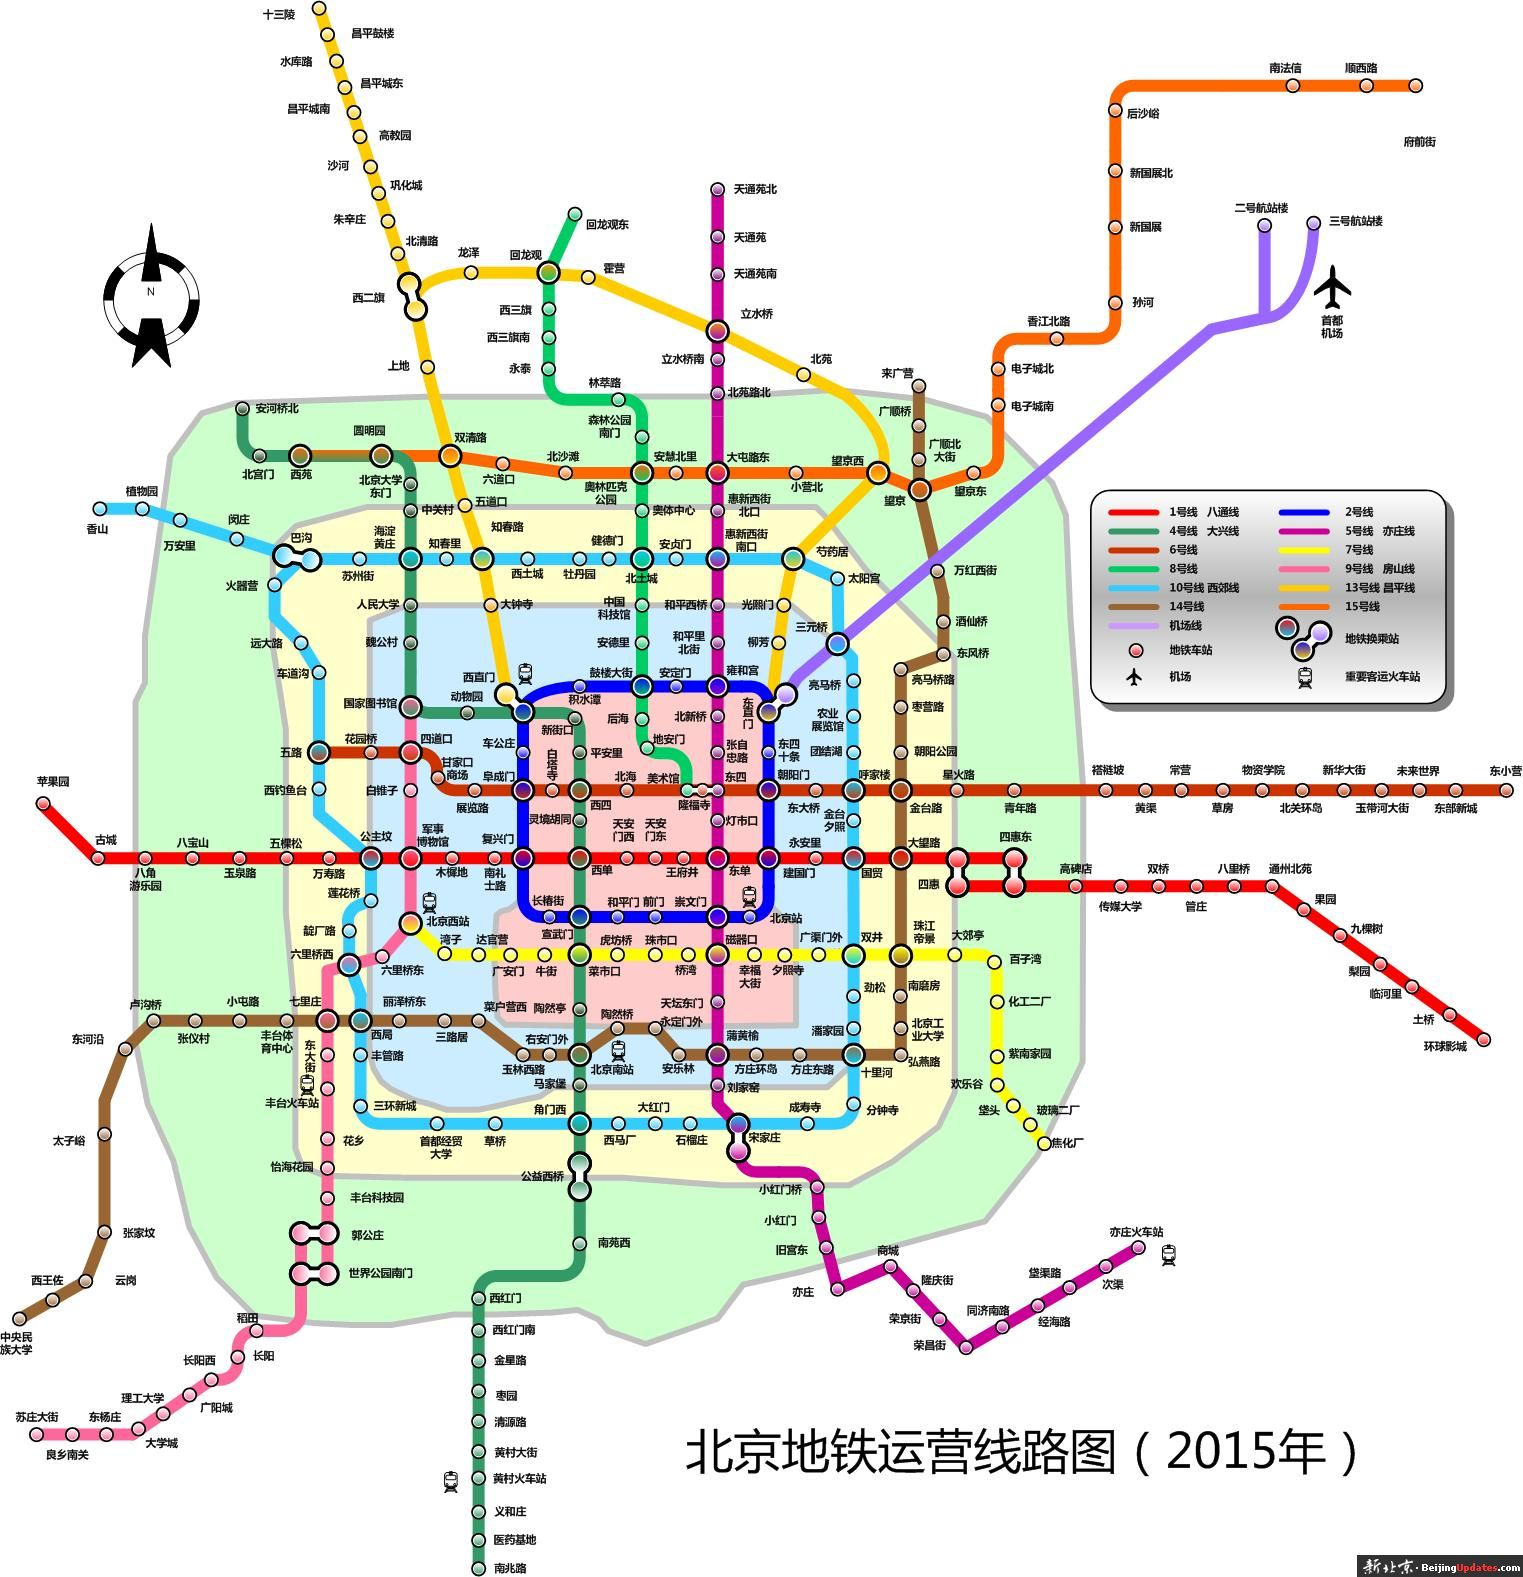 Beijing to construct more subway lines, regional roads - China.org.cn